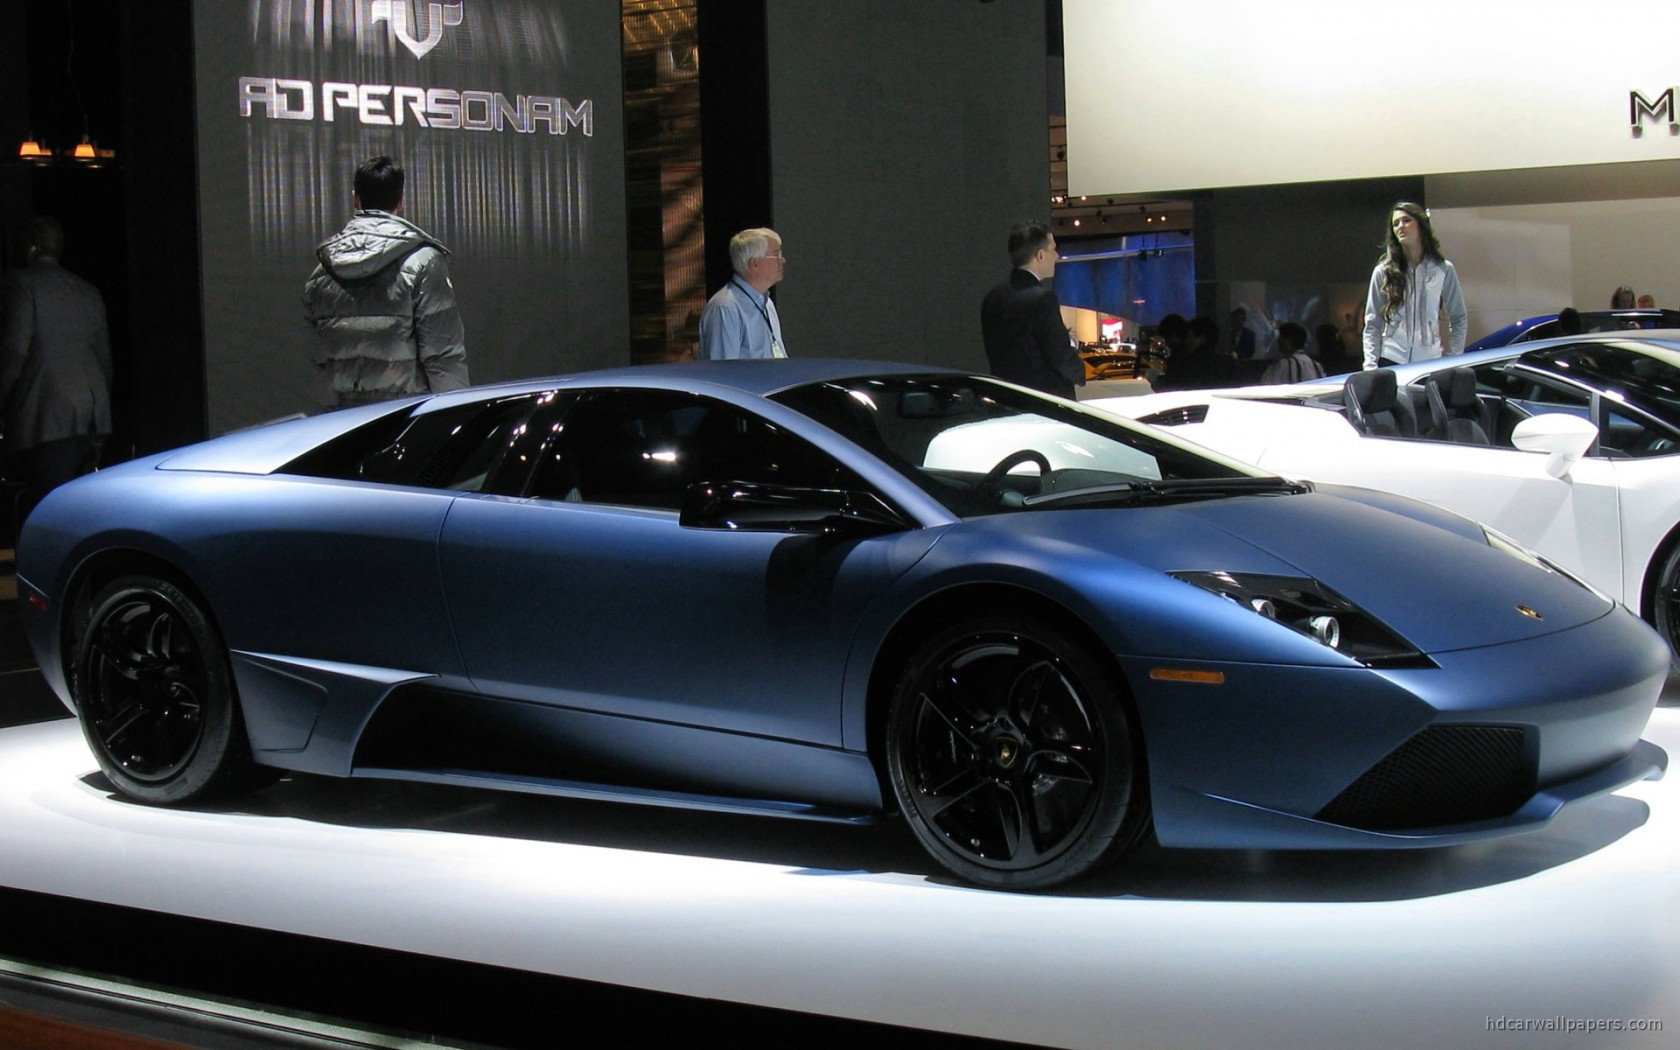 Cars Wallpapers: Lamborghini Ad Personam Cars Wallpaper